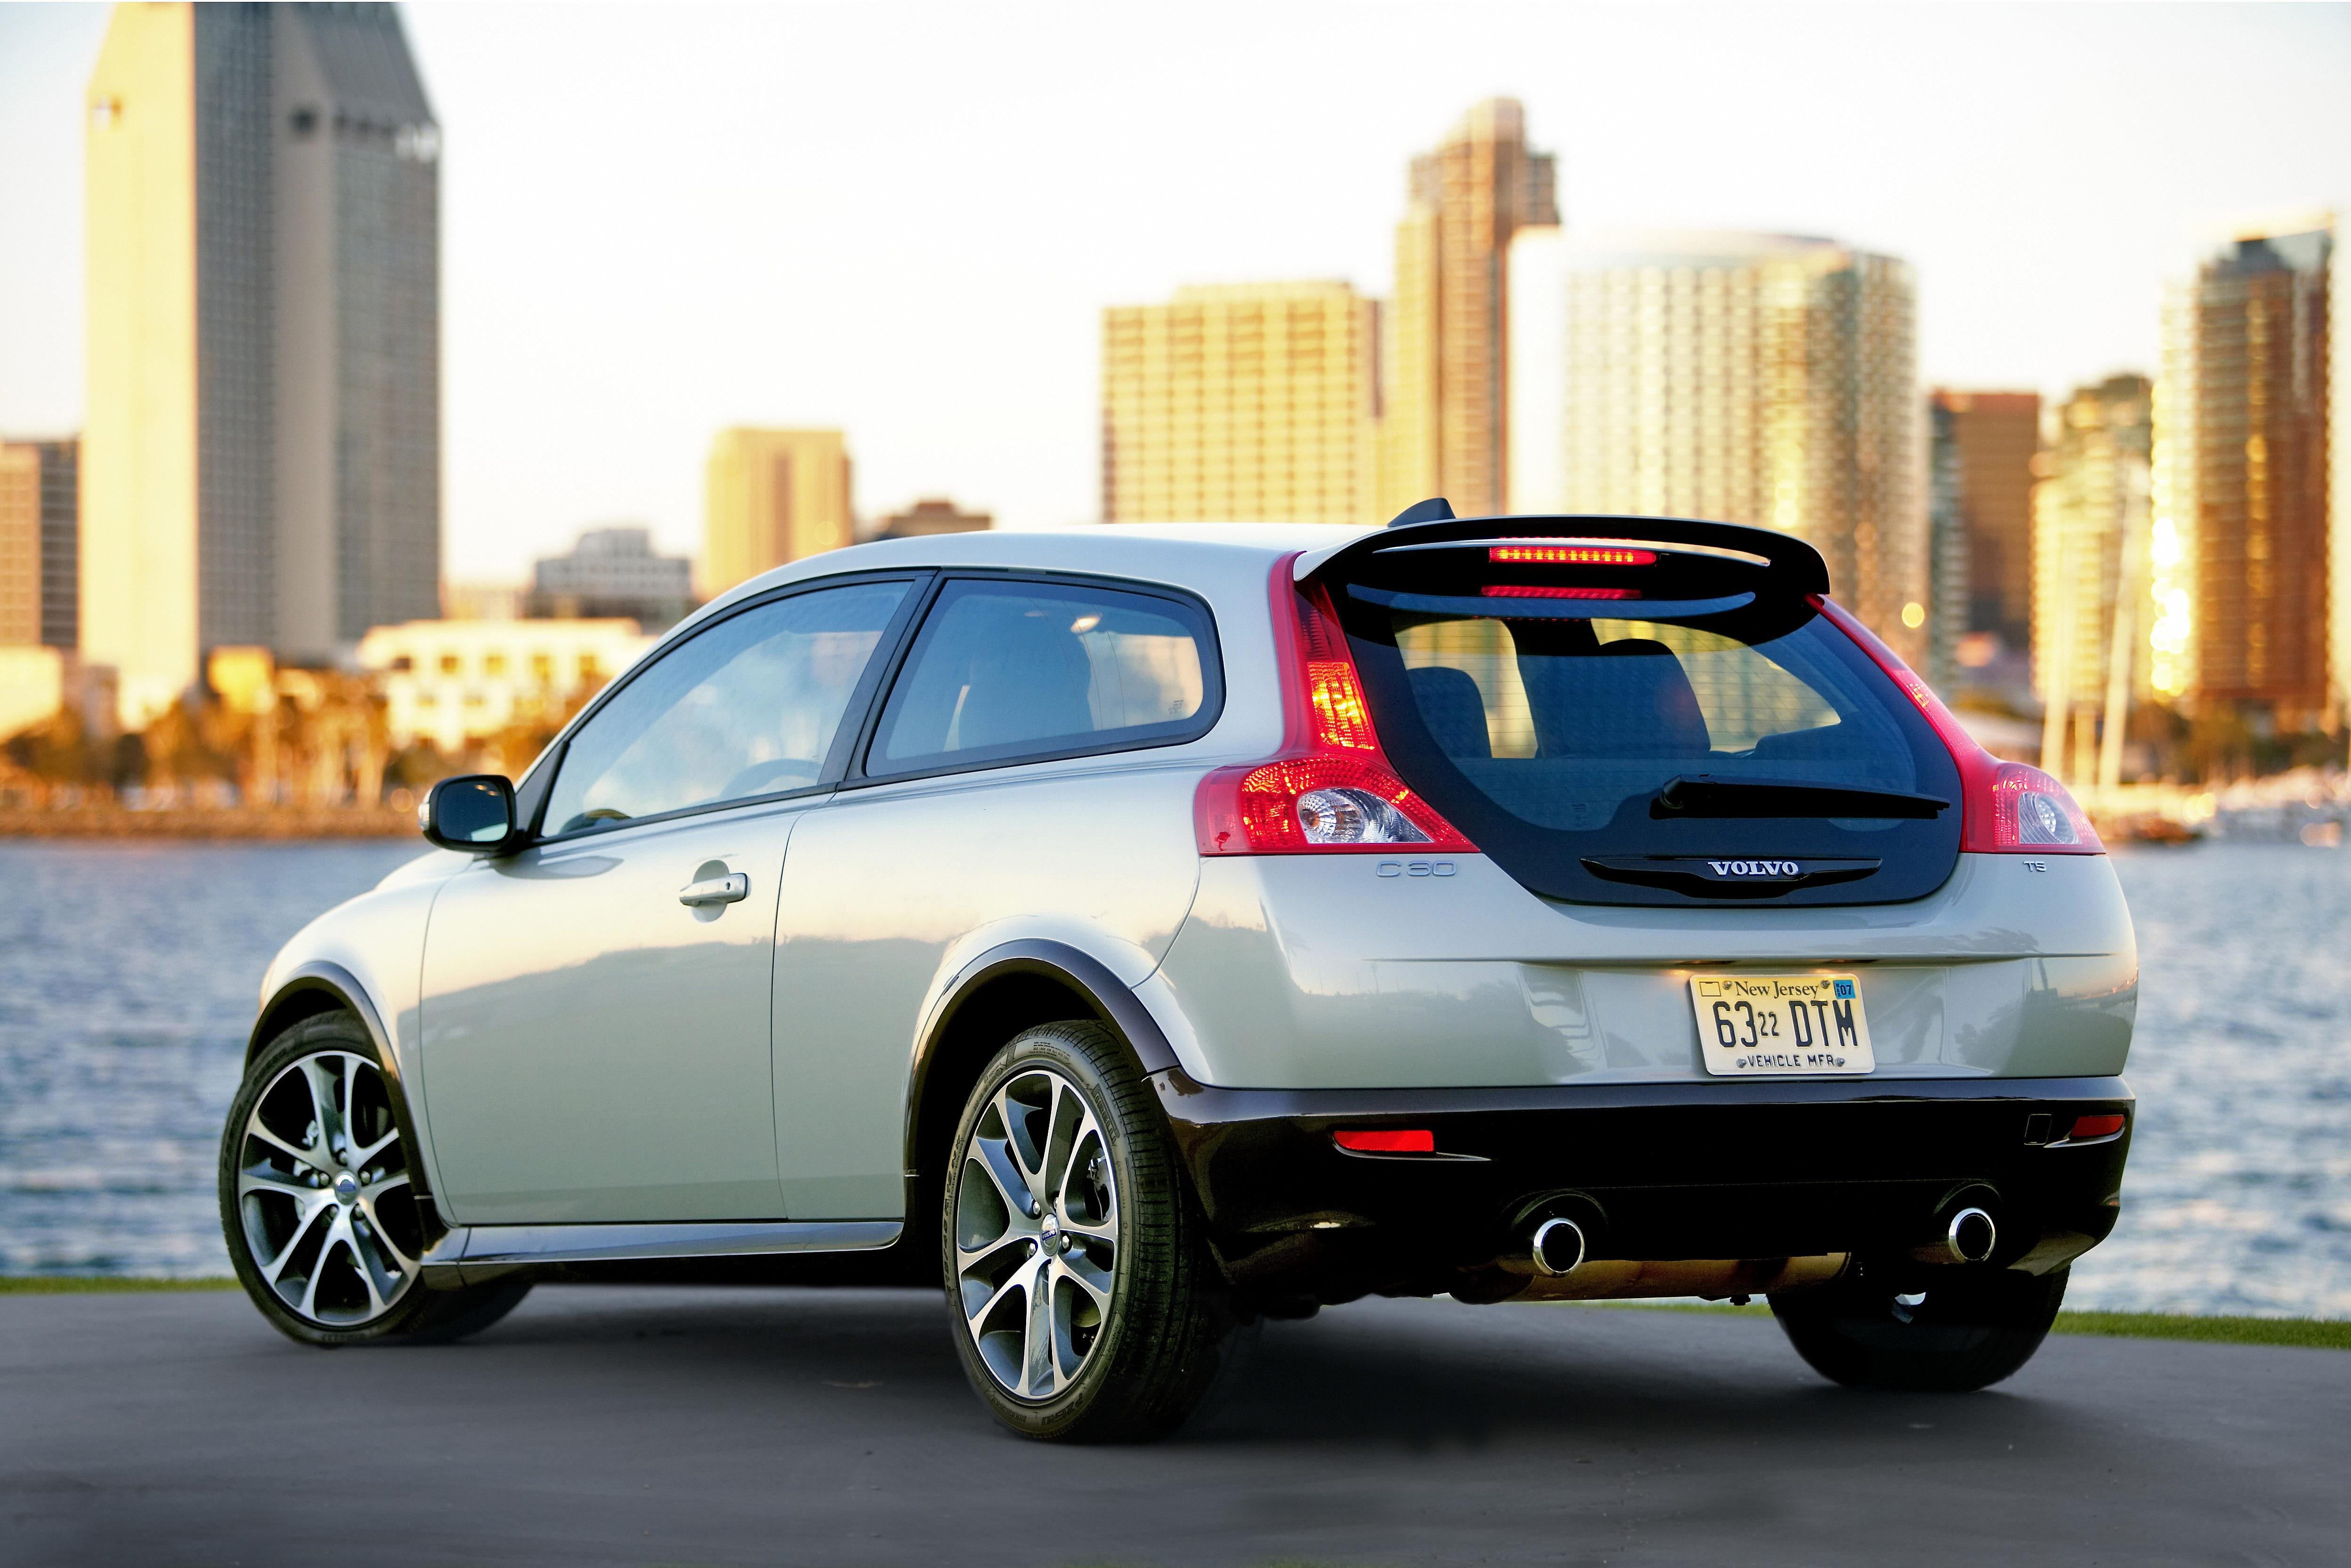 Volvo C30 Pricing Announced News - Top Sd